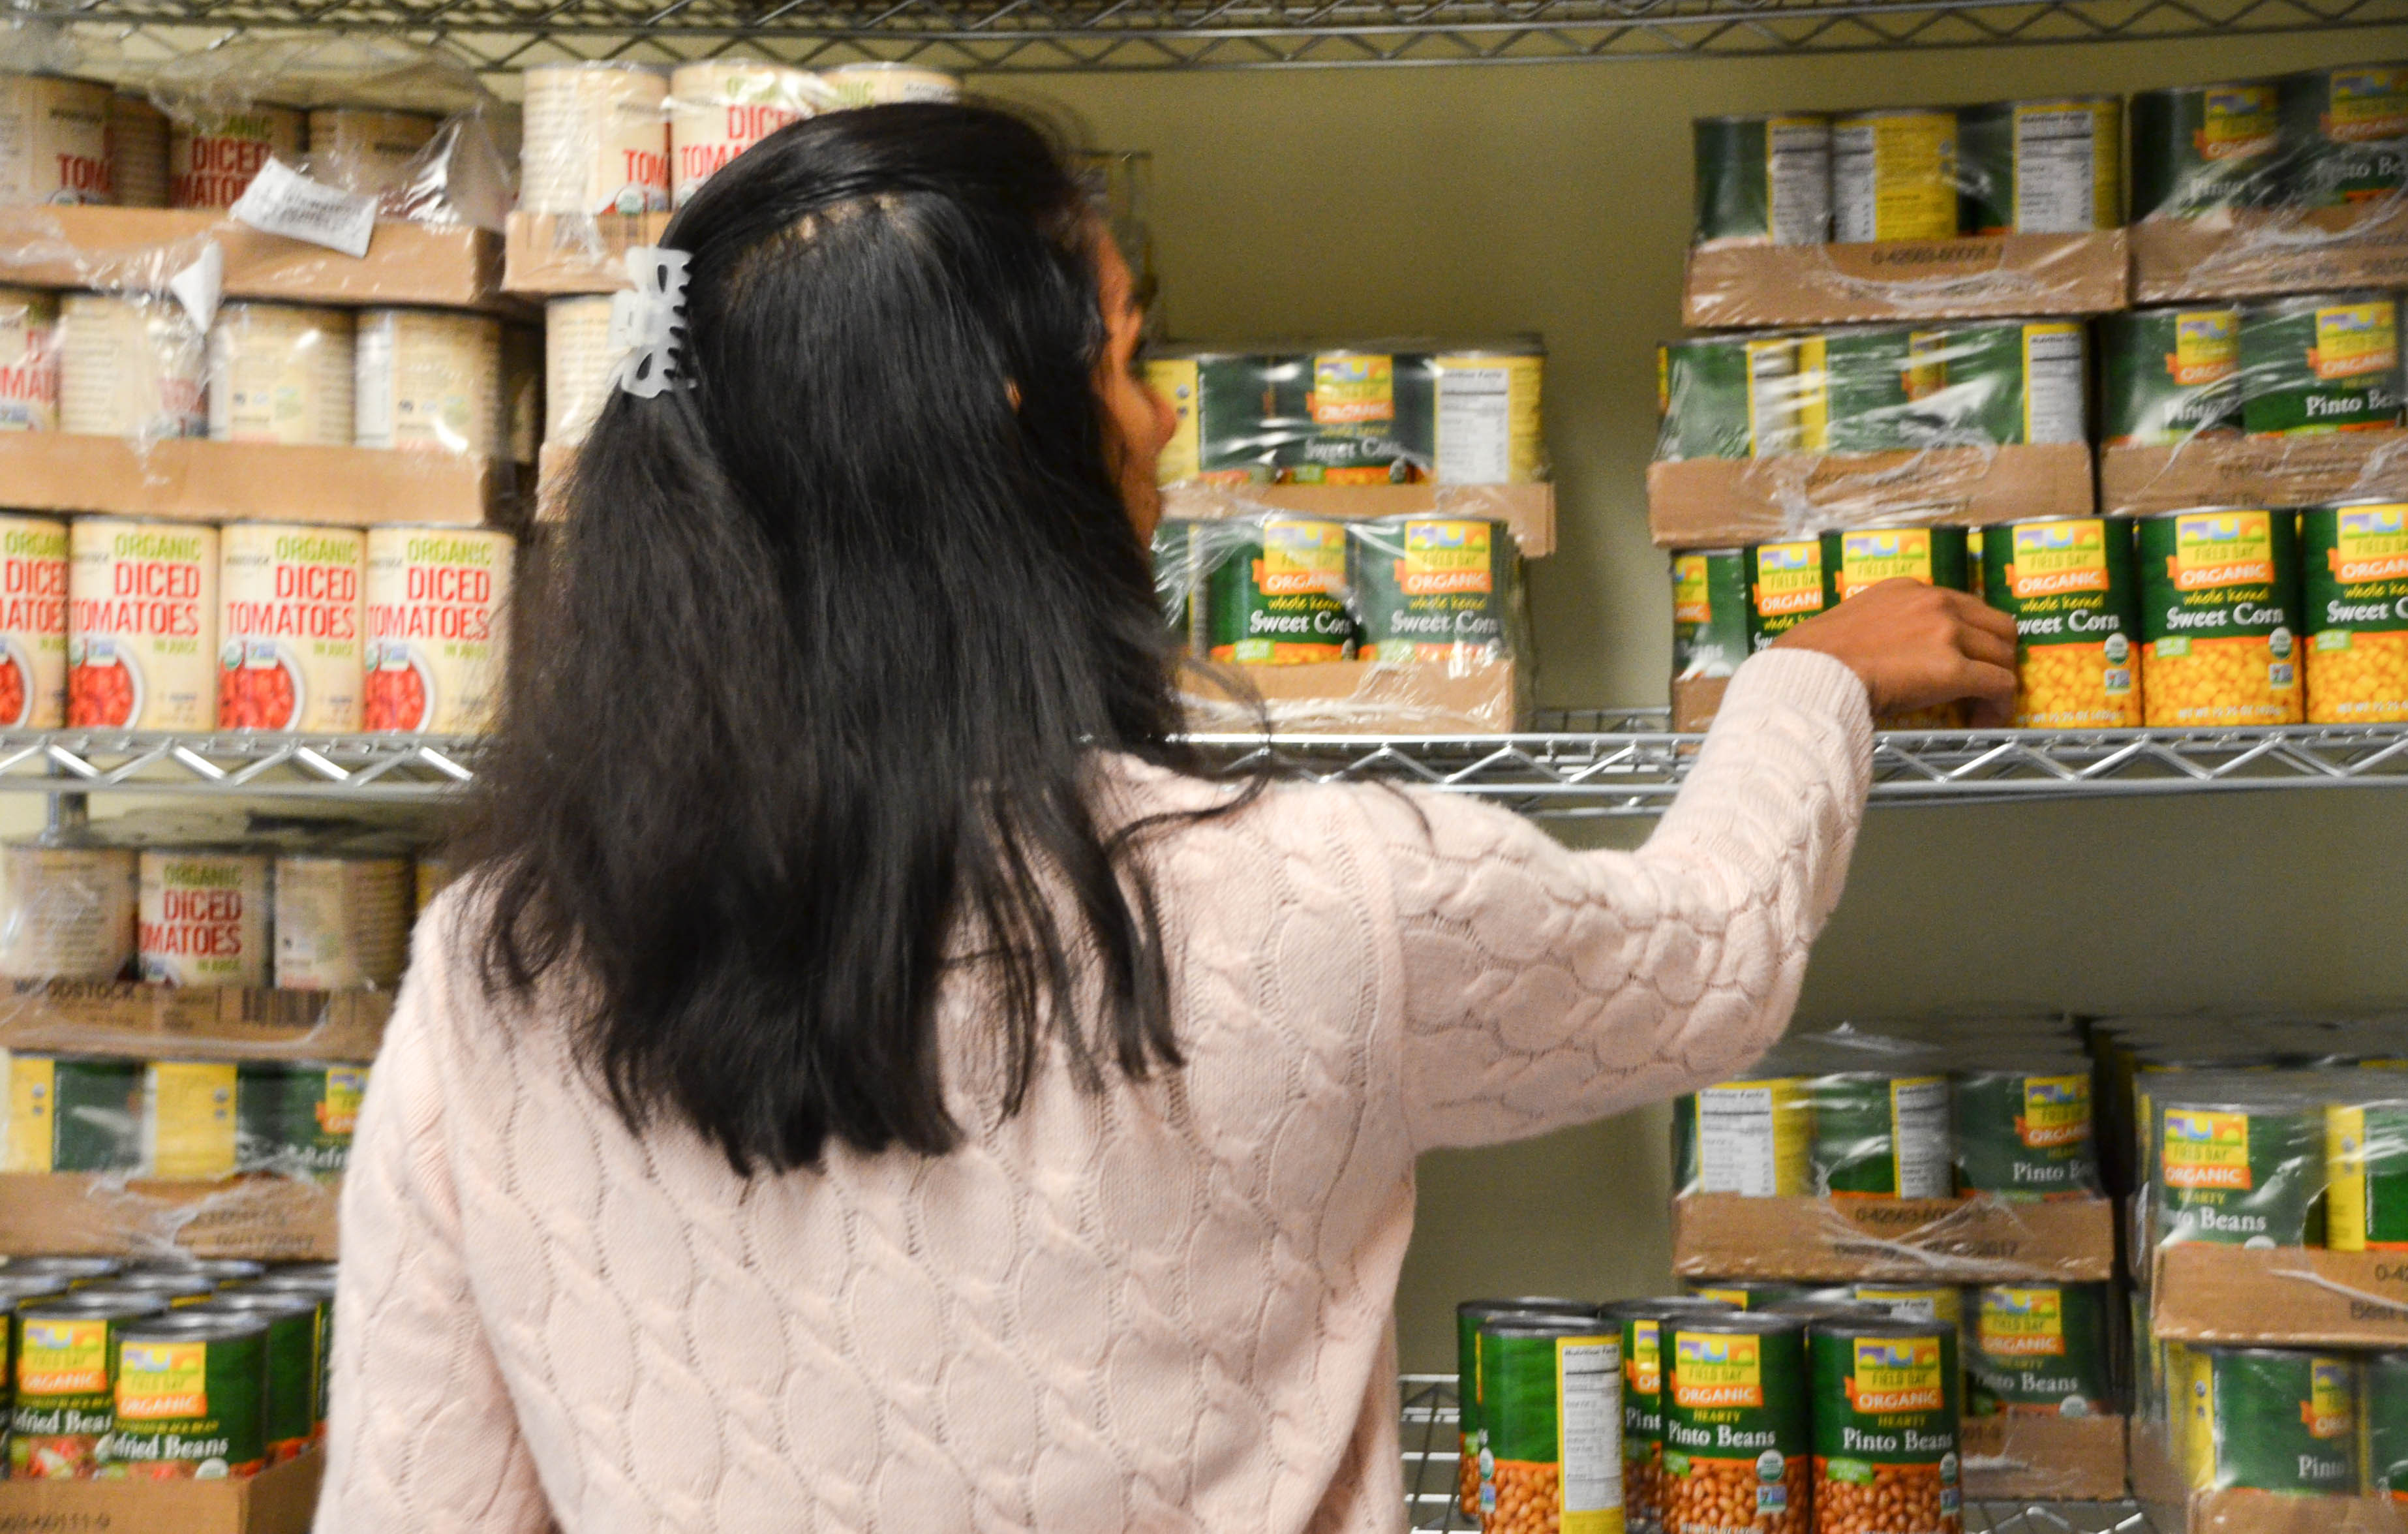 Best ideas about Uc Berkeley Food Pantry . Save or Pin UC Berkeley Food Pantry Now.